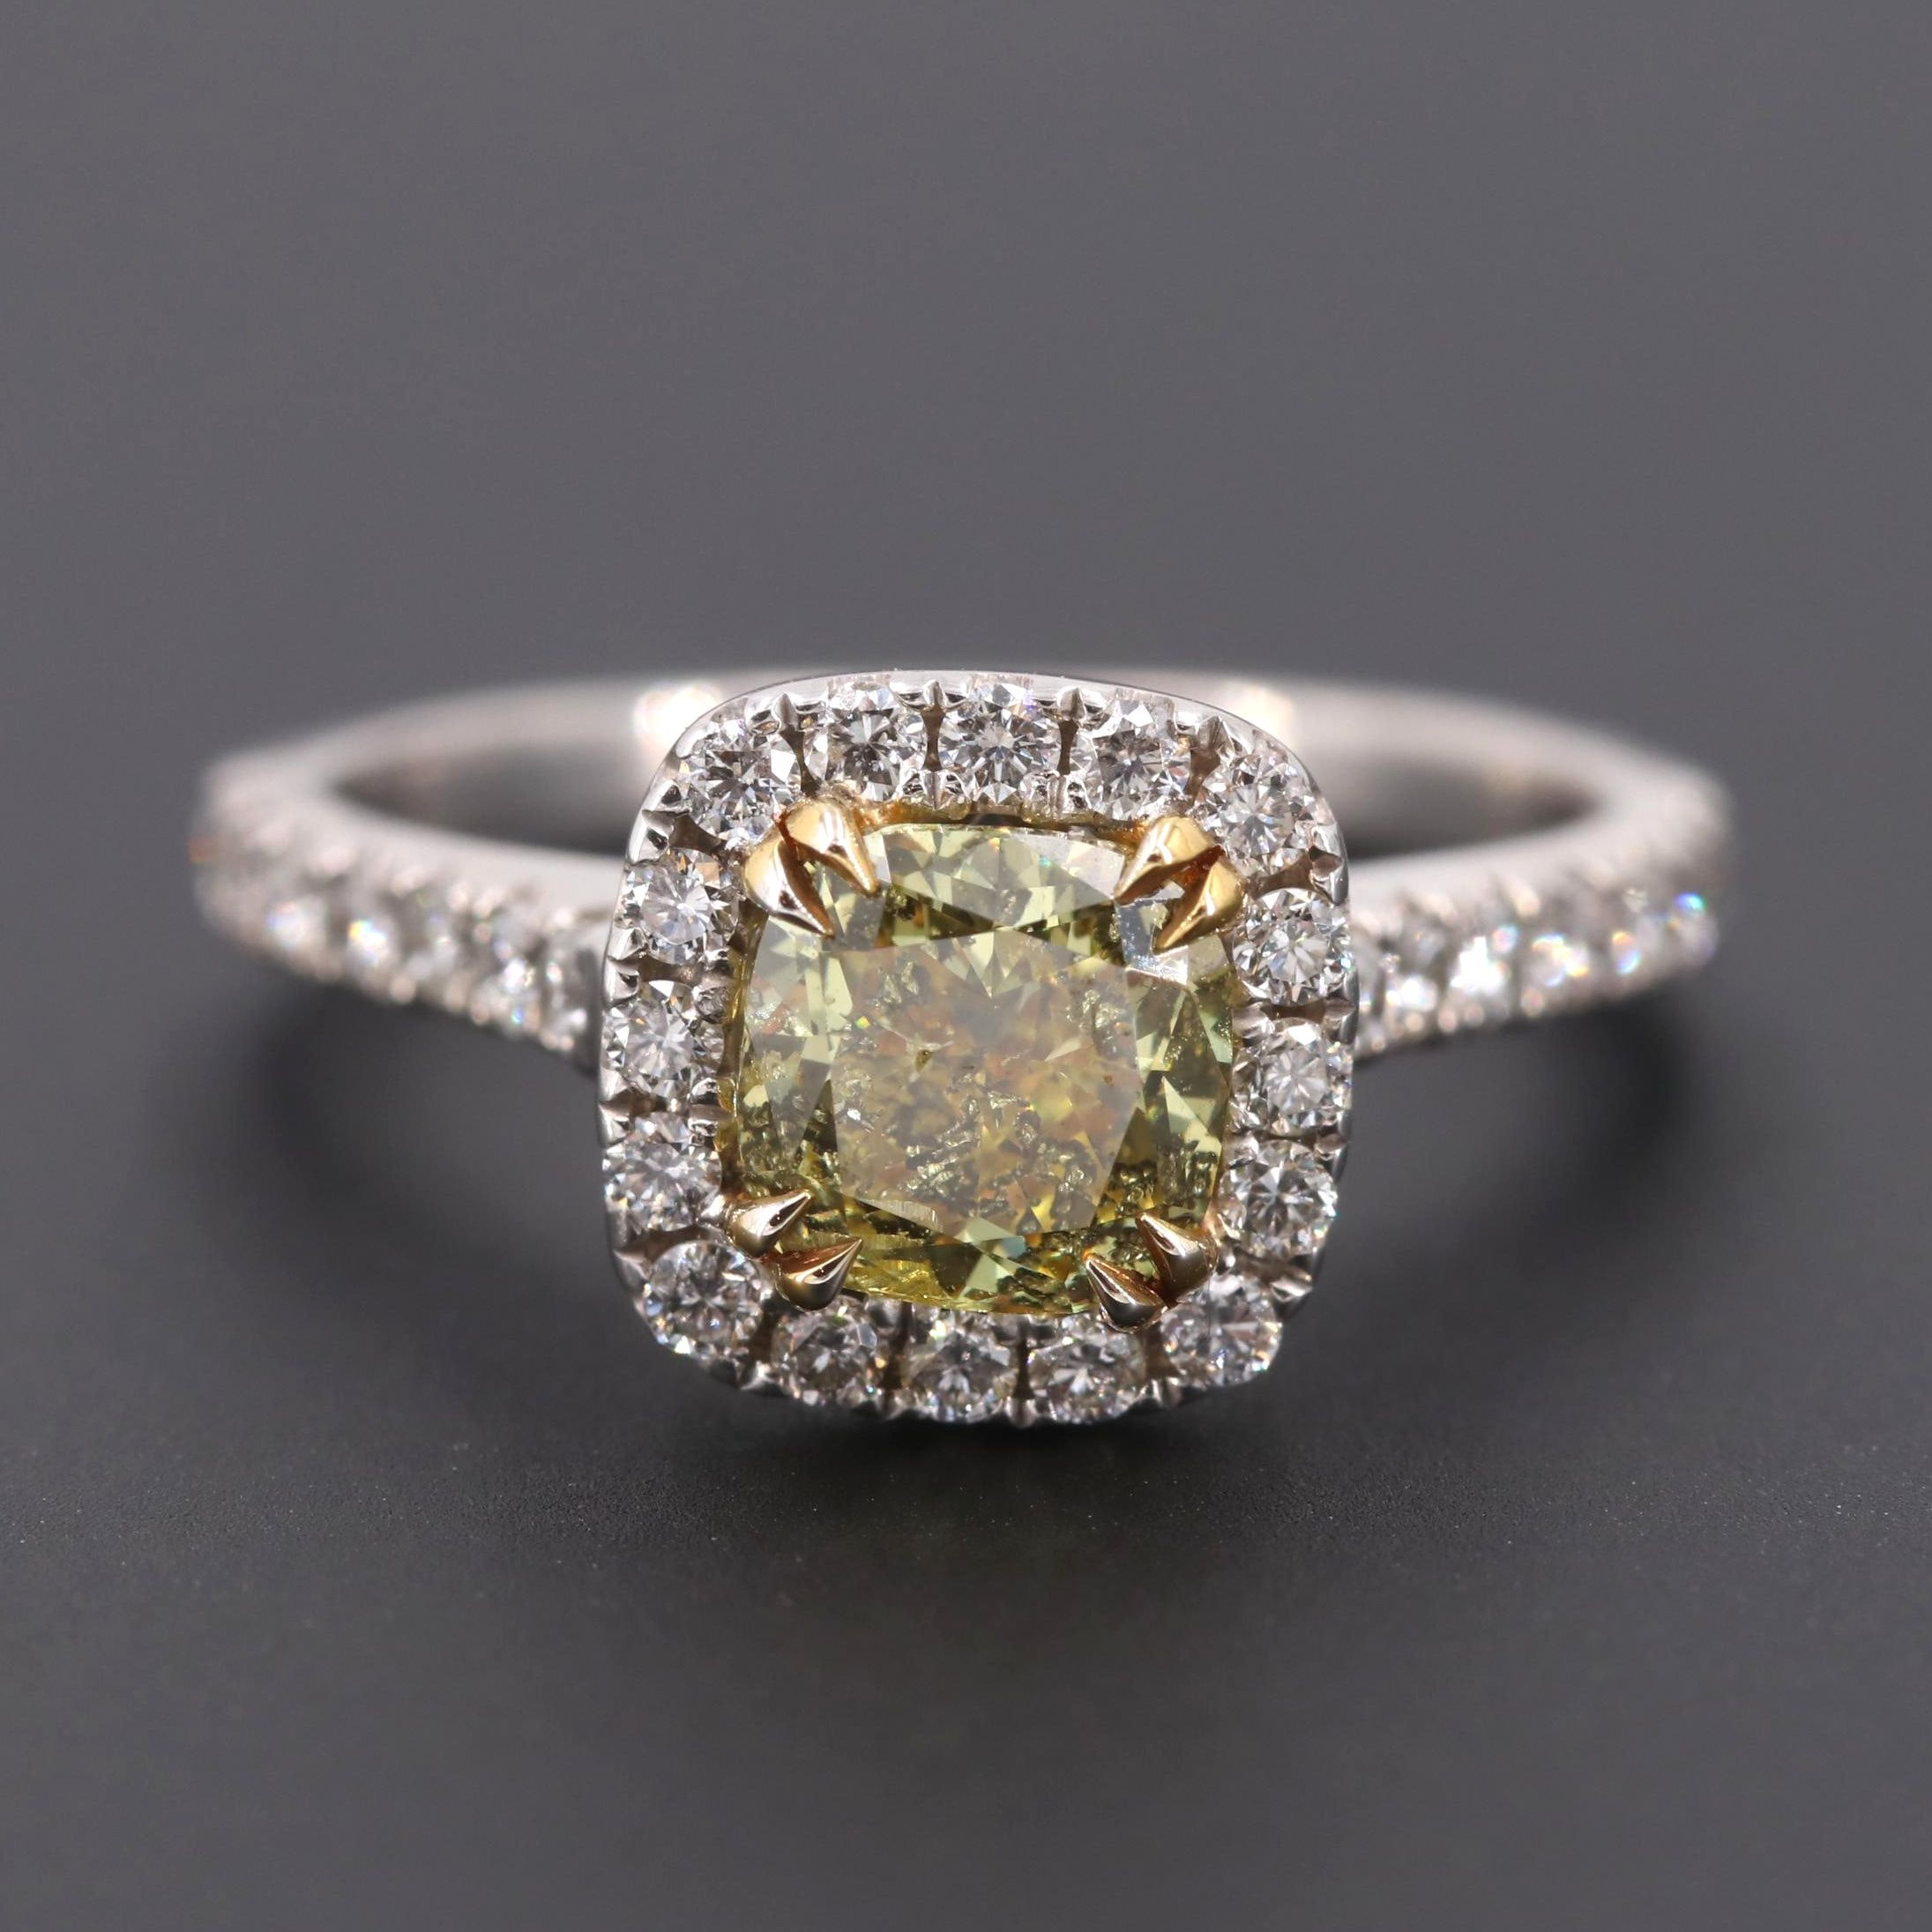 14K White Gold 1.50 CTW Fancy Deep Yellow Diamond Ring with GIA Report